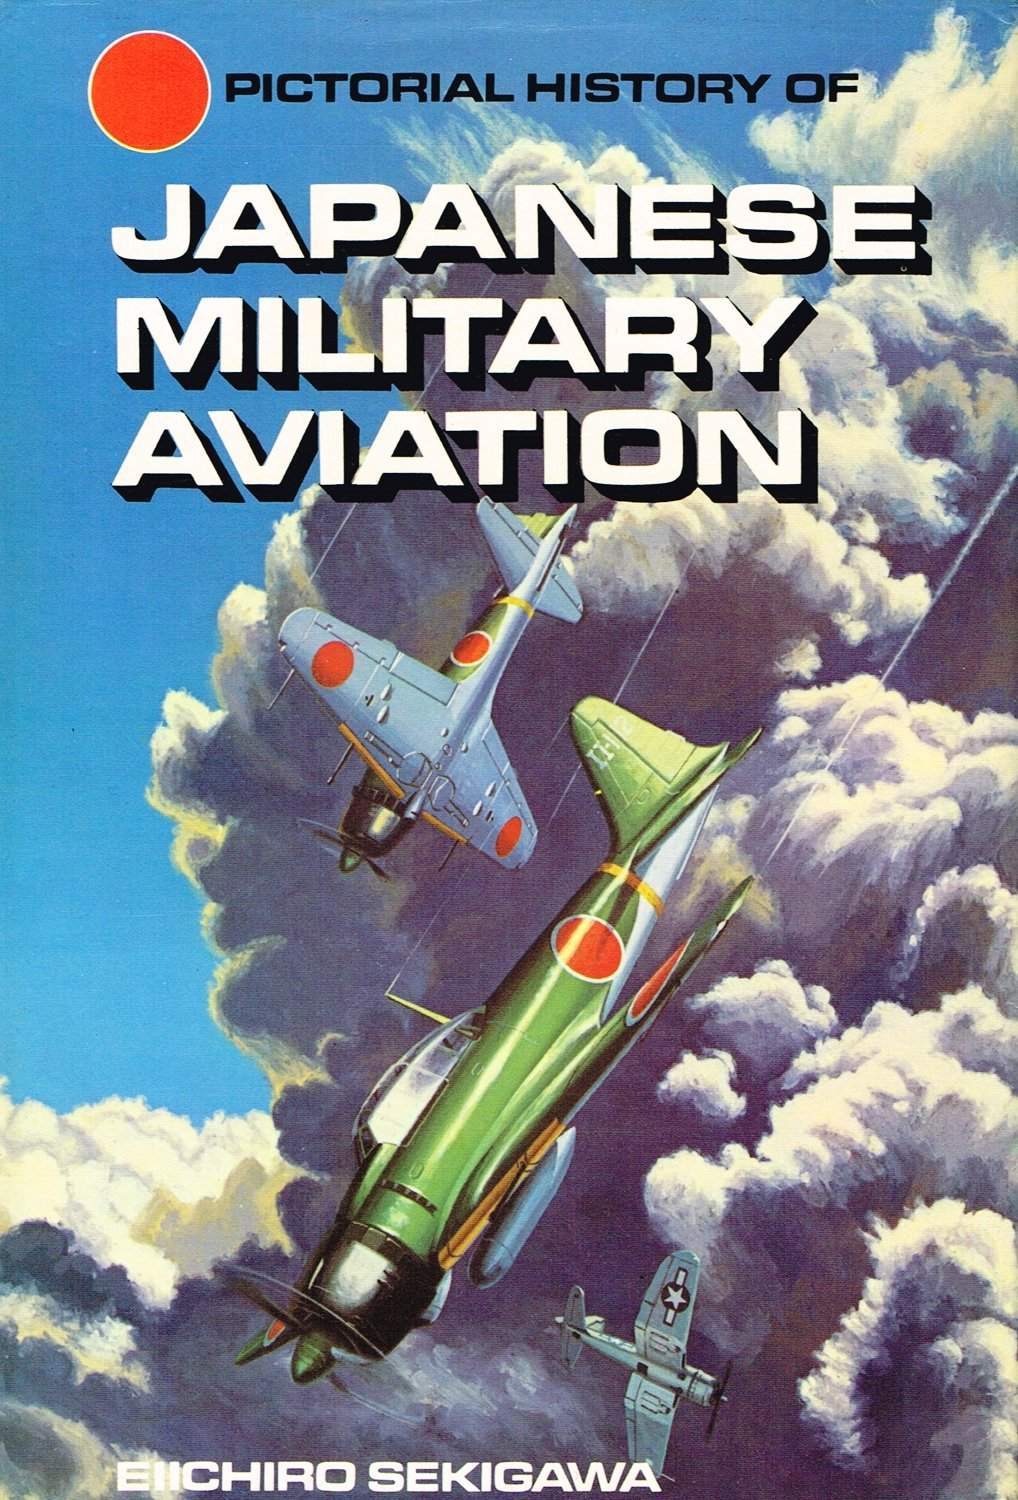 Pictorial History of Japanese Military Aviation Sekigawa, Eiichiro